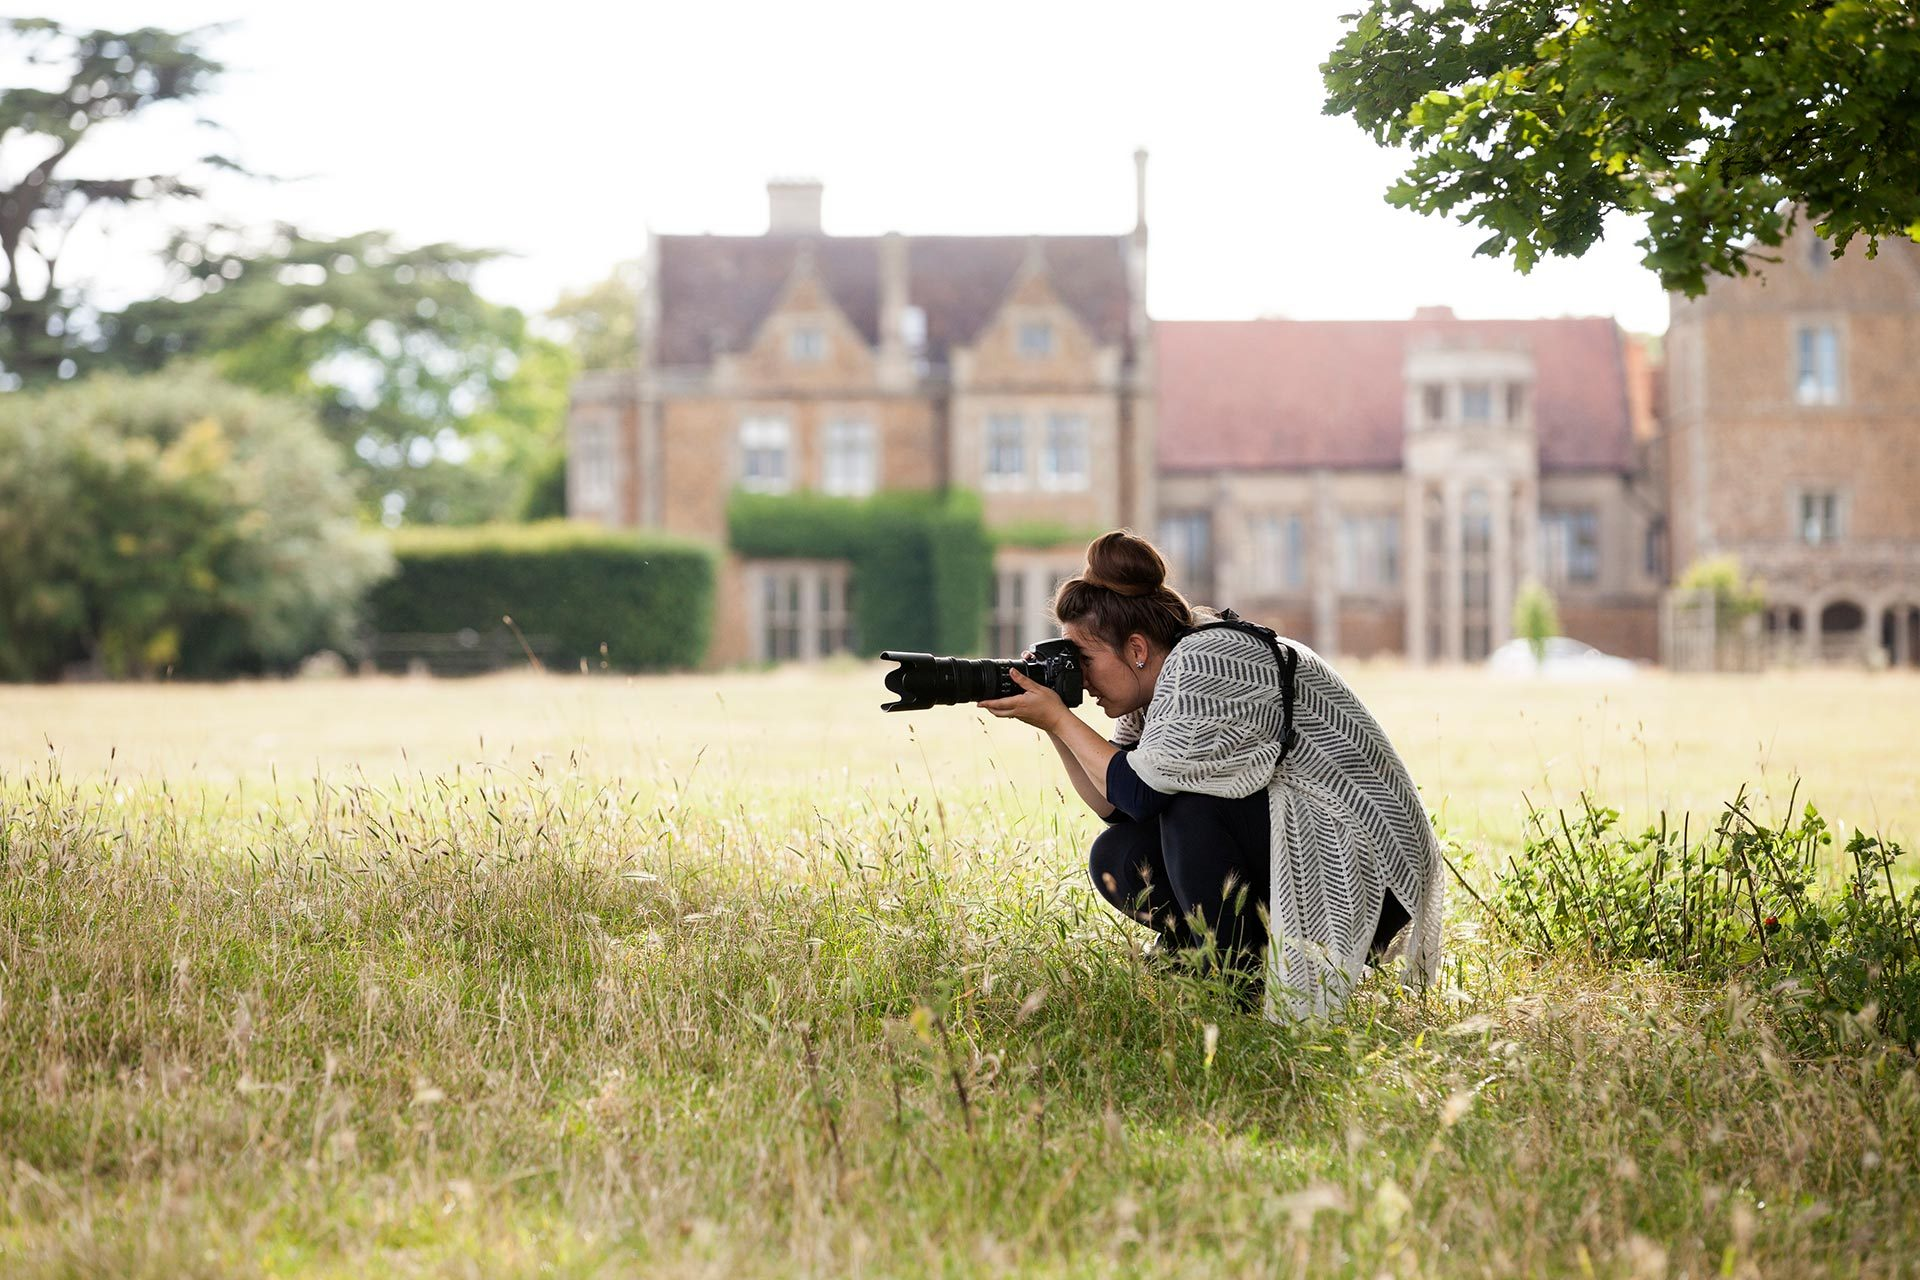 Sarah Vivienne taking photos at Fawsley Hall